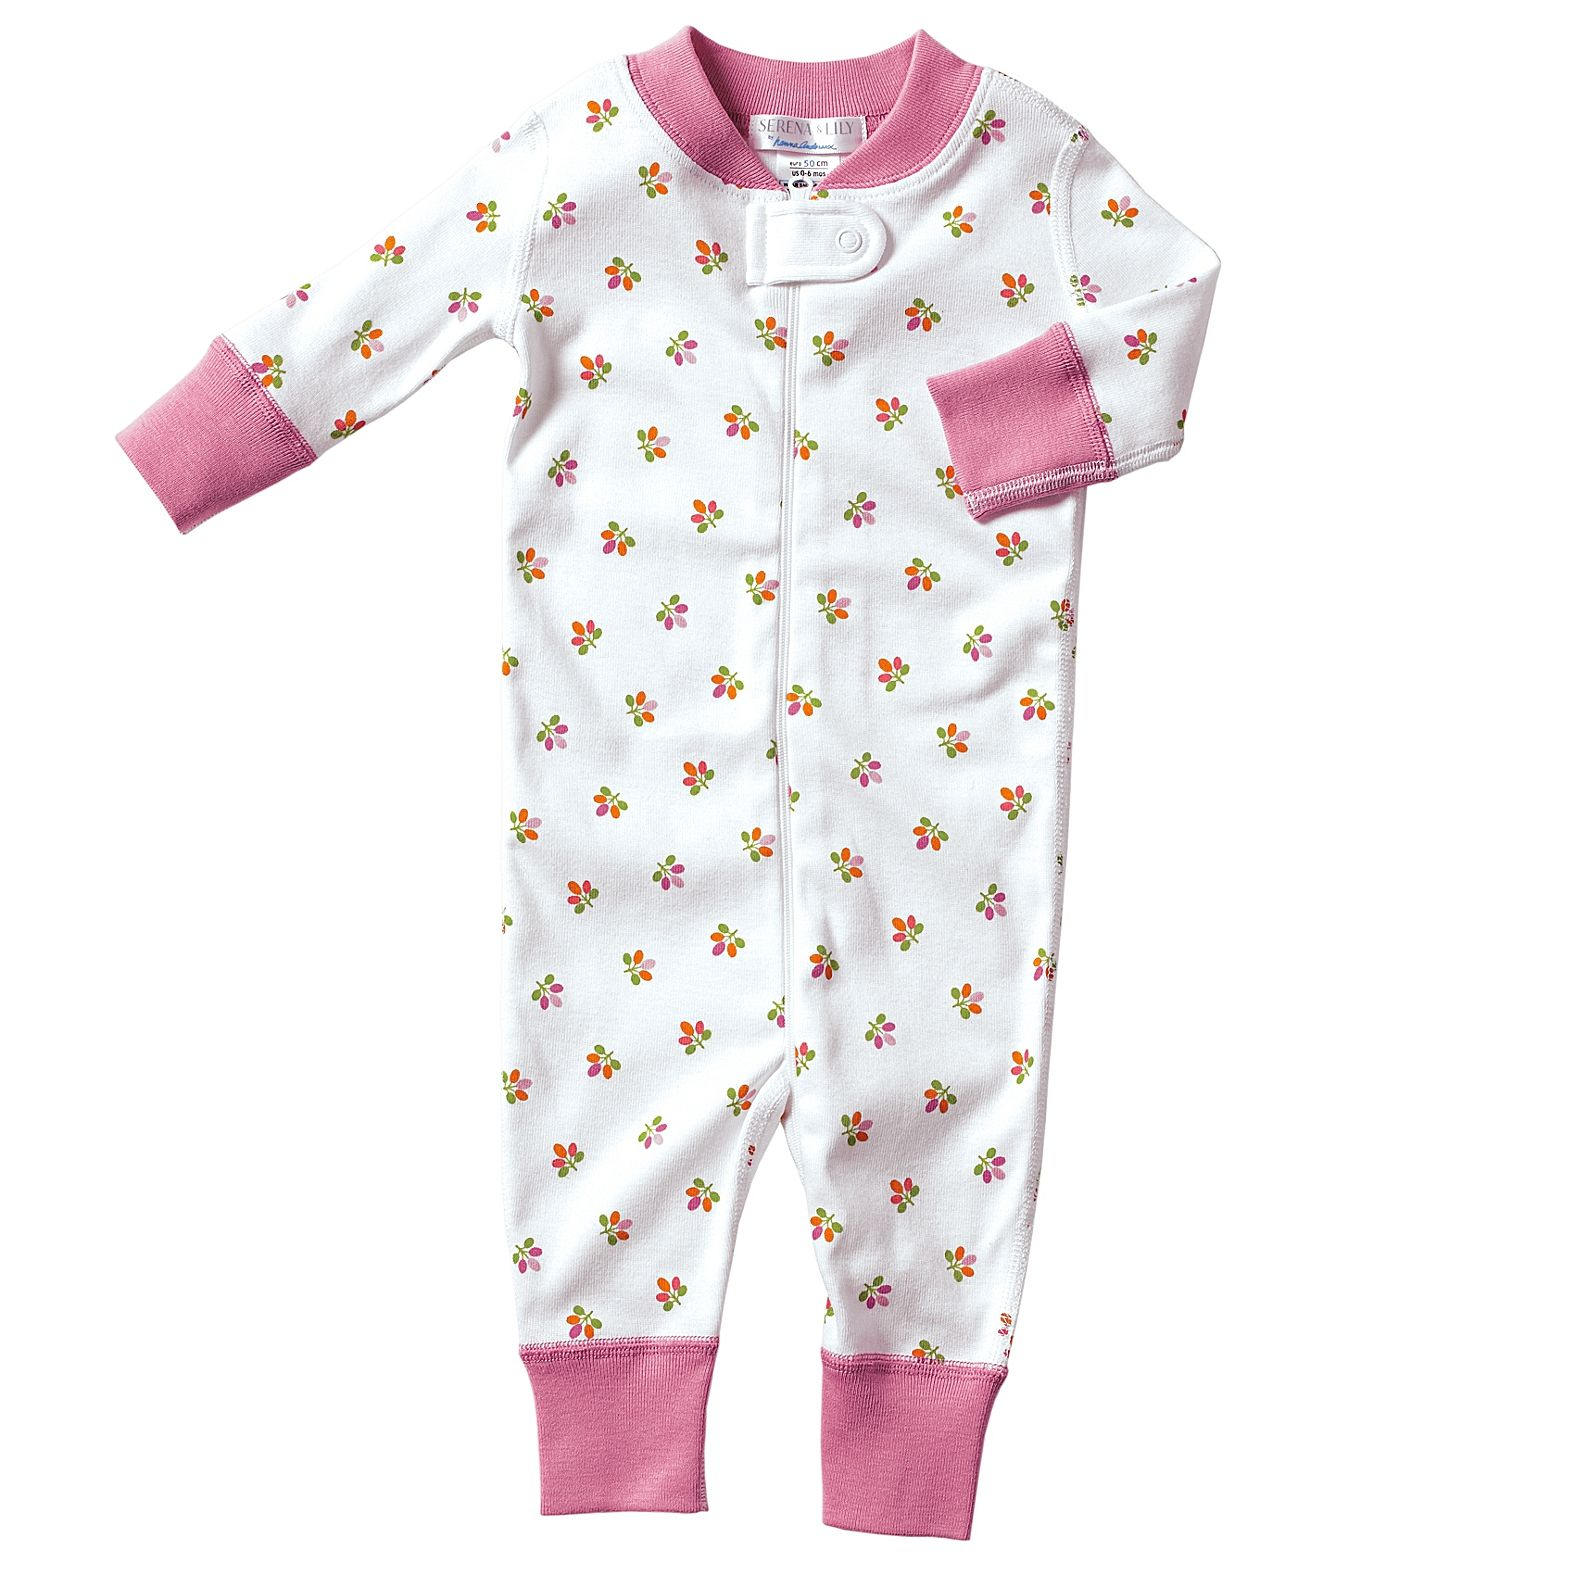 Jana Only Sweet Girls: Hanna Andersson Baby Sleeper - Juice Mini Floral